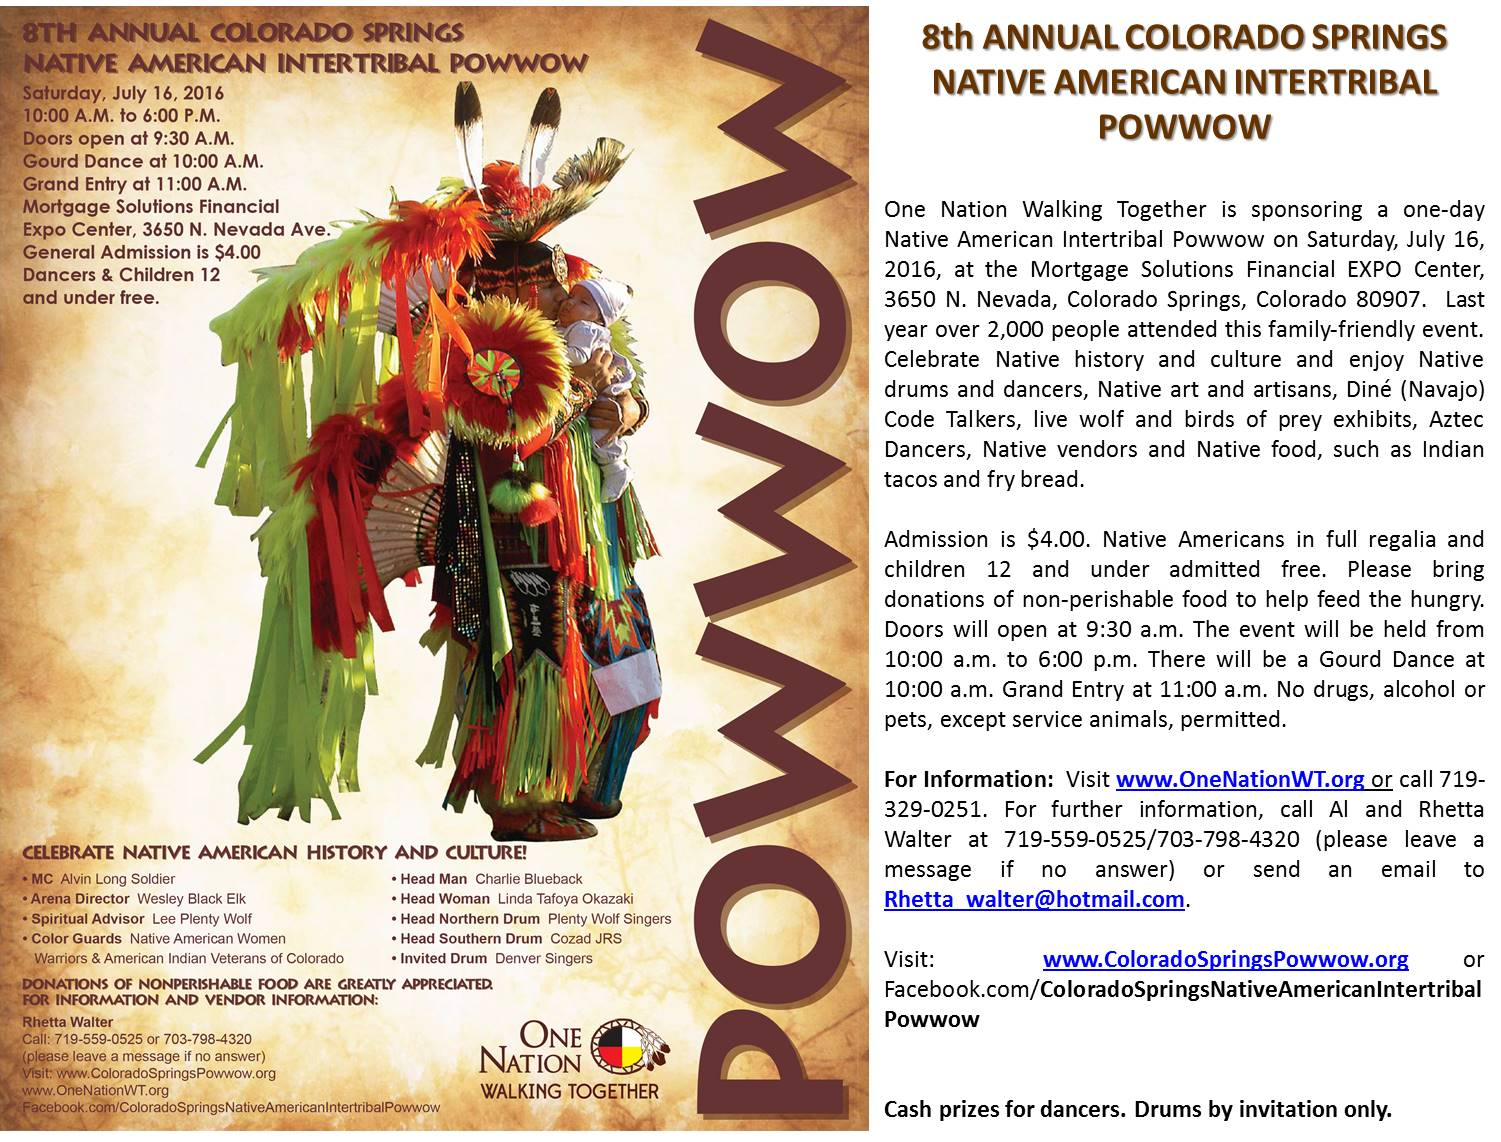 8th Annual Colorado Springs Native American Intertribal Powwow